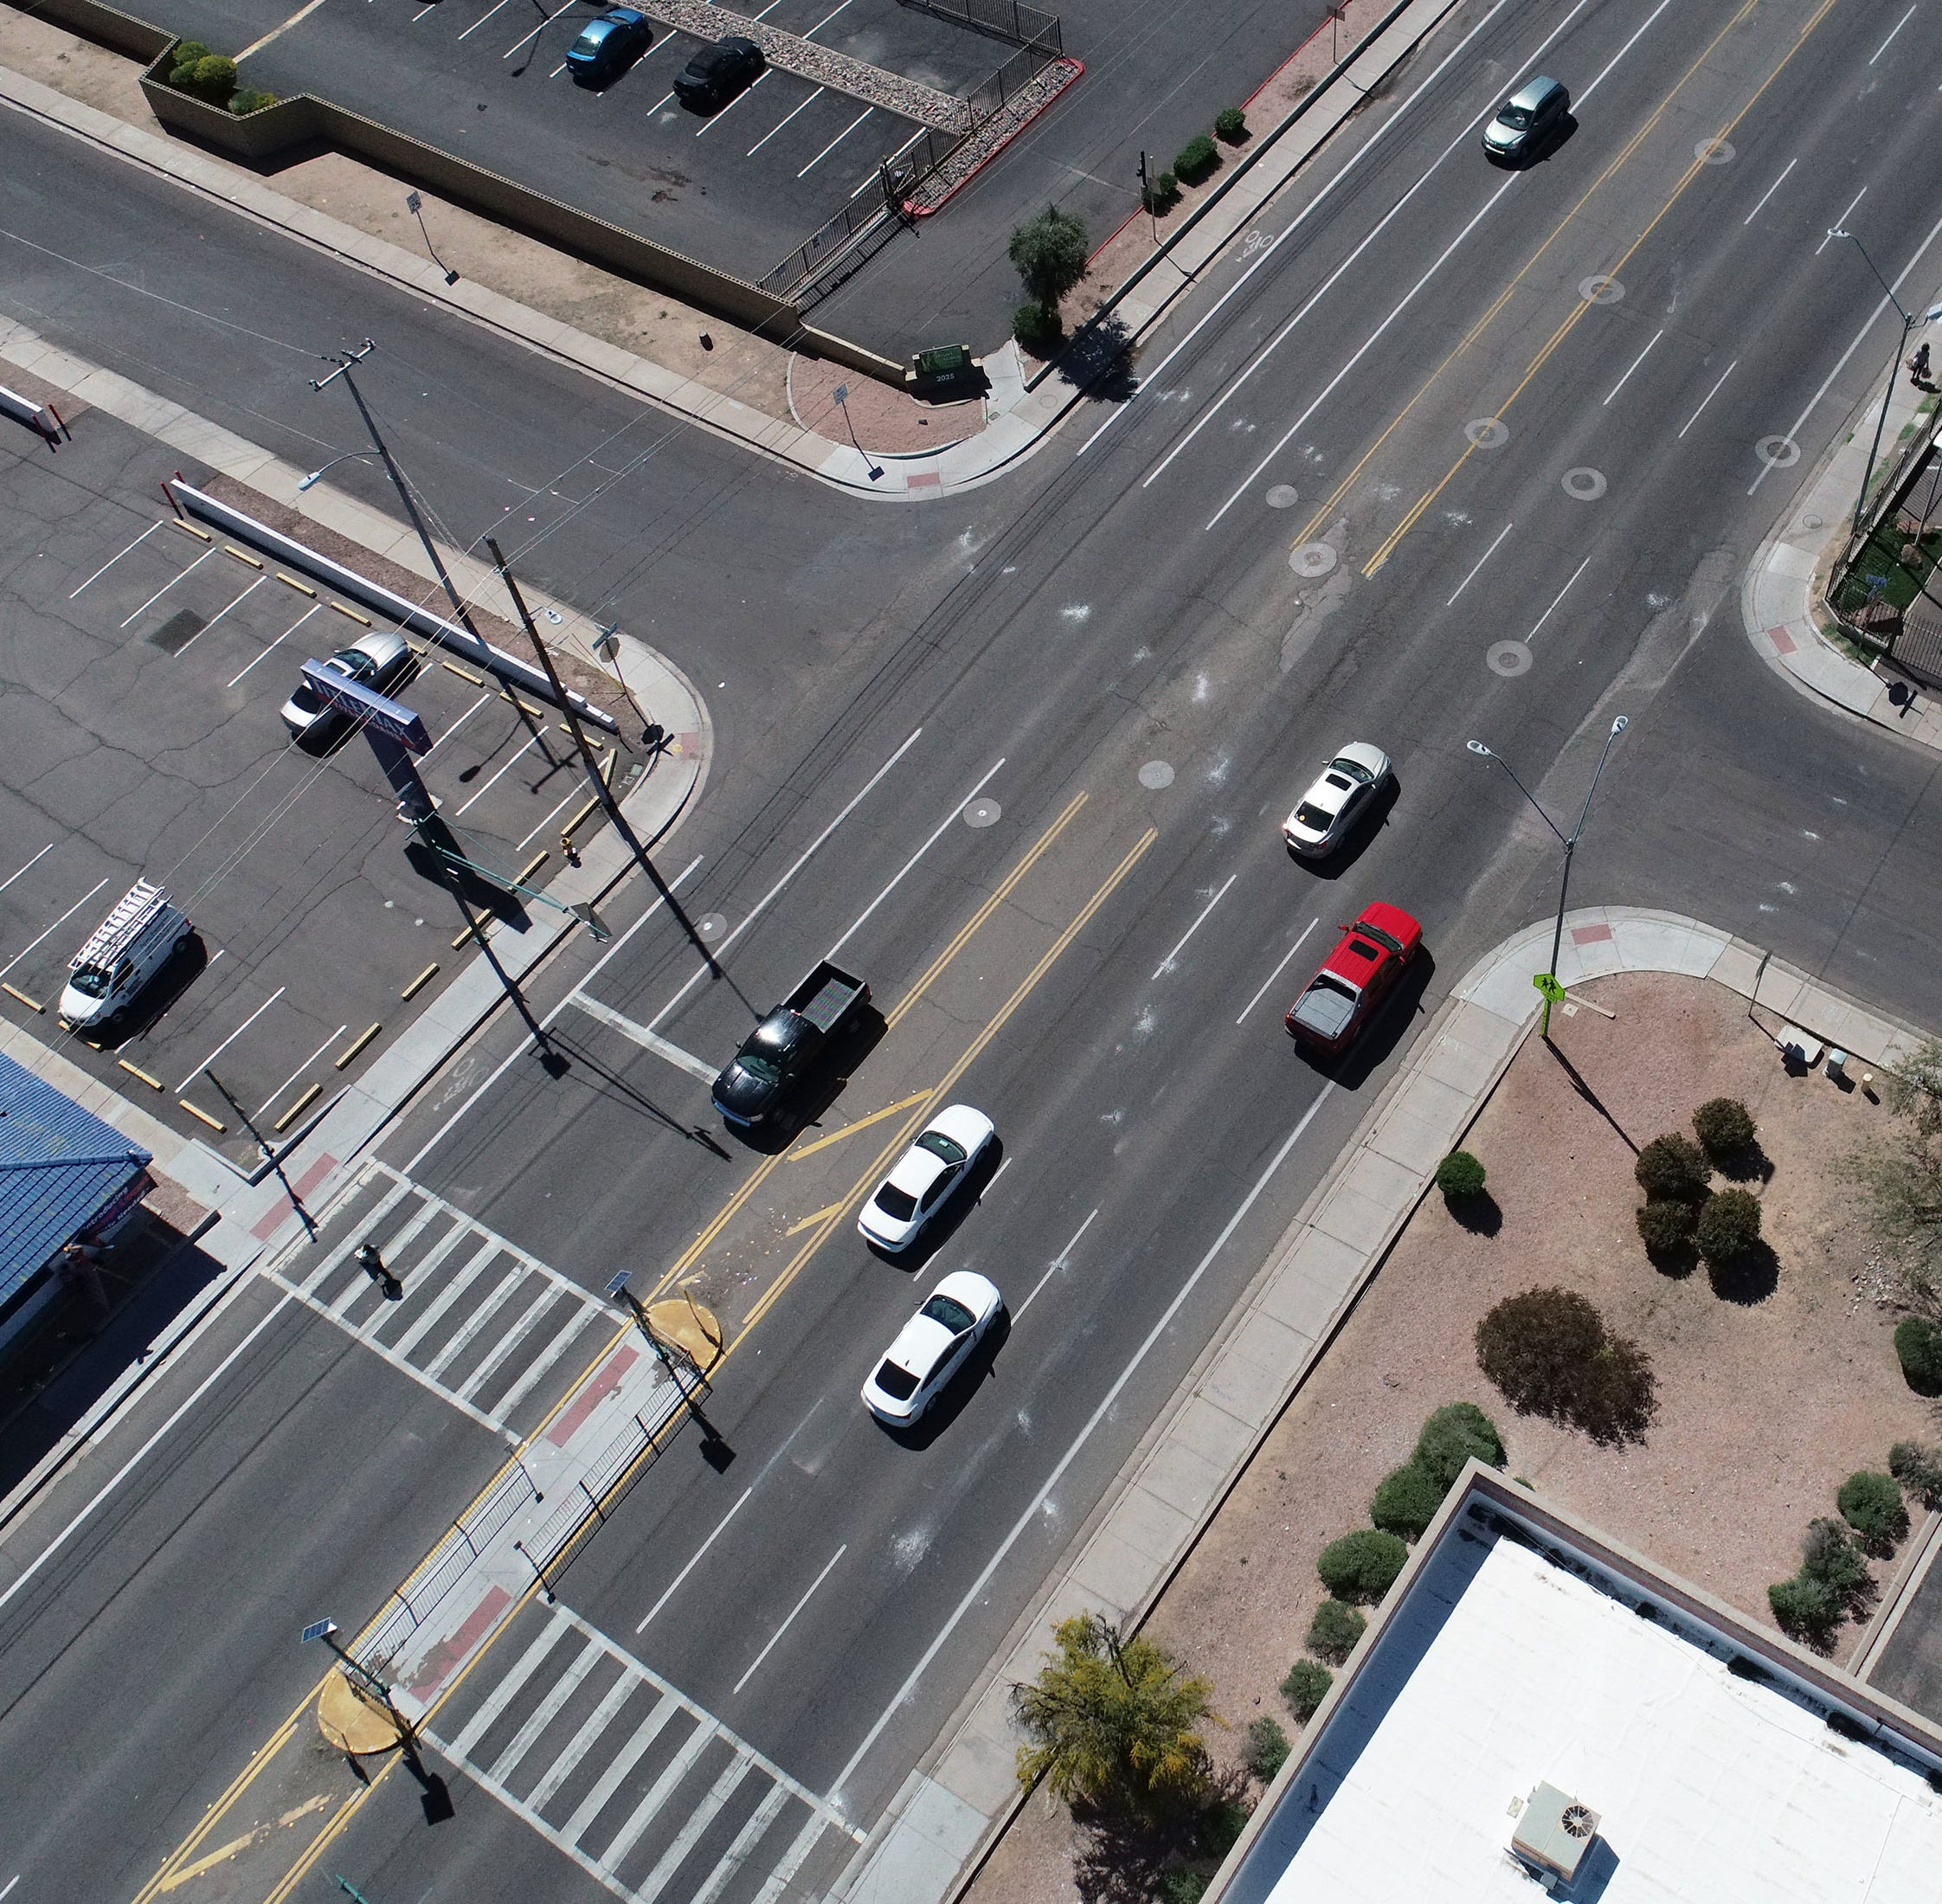 On Phoenix's most dangerous streets, little has been done to address the pedestrian death toll